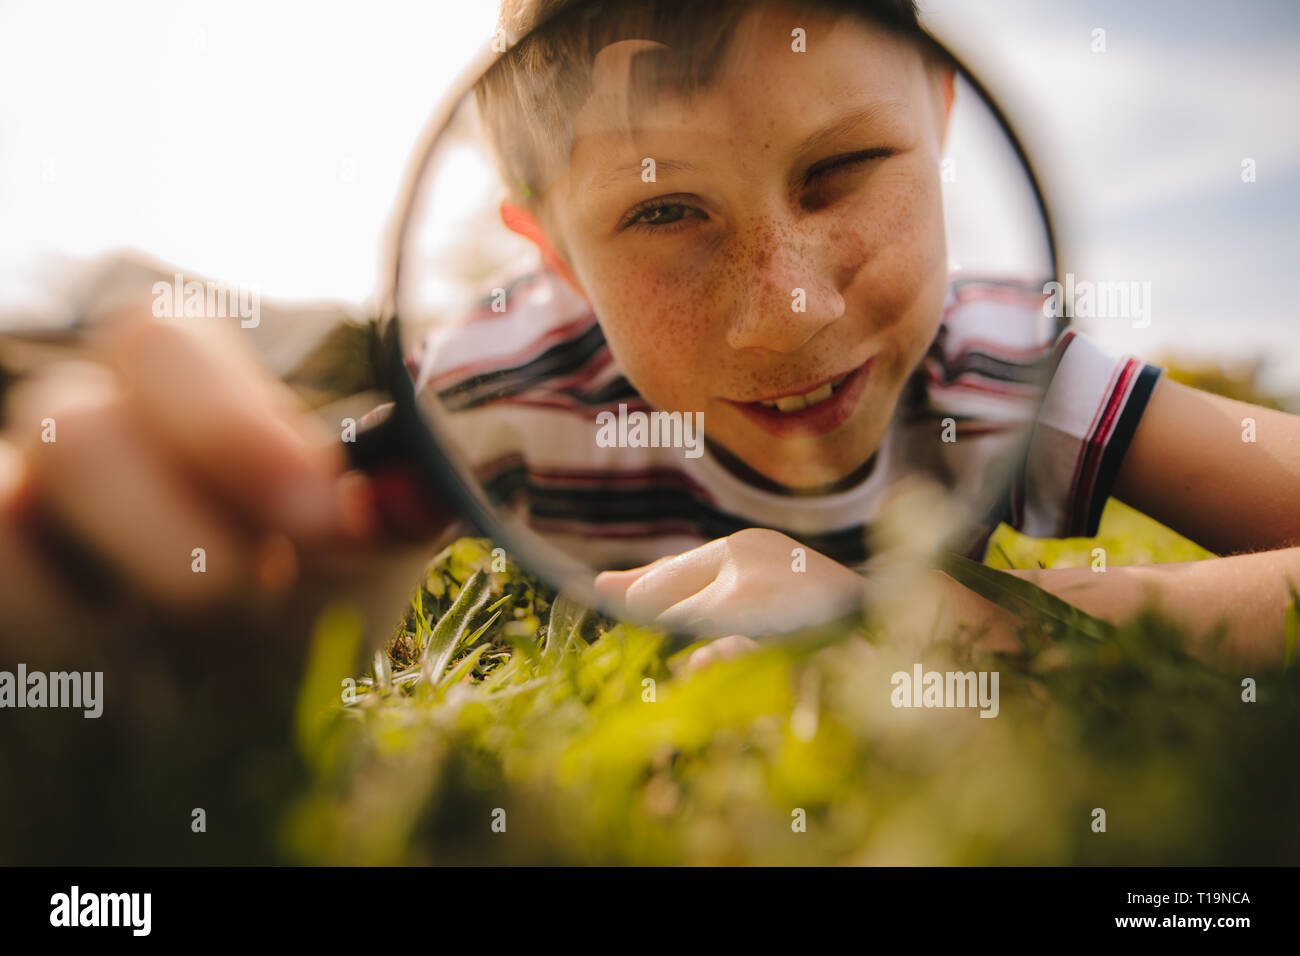 Boy looking through magnifying glass. cute boy exploring with magnifying glass. - Stock Image